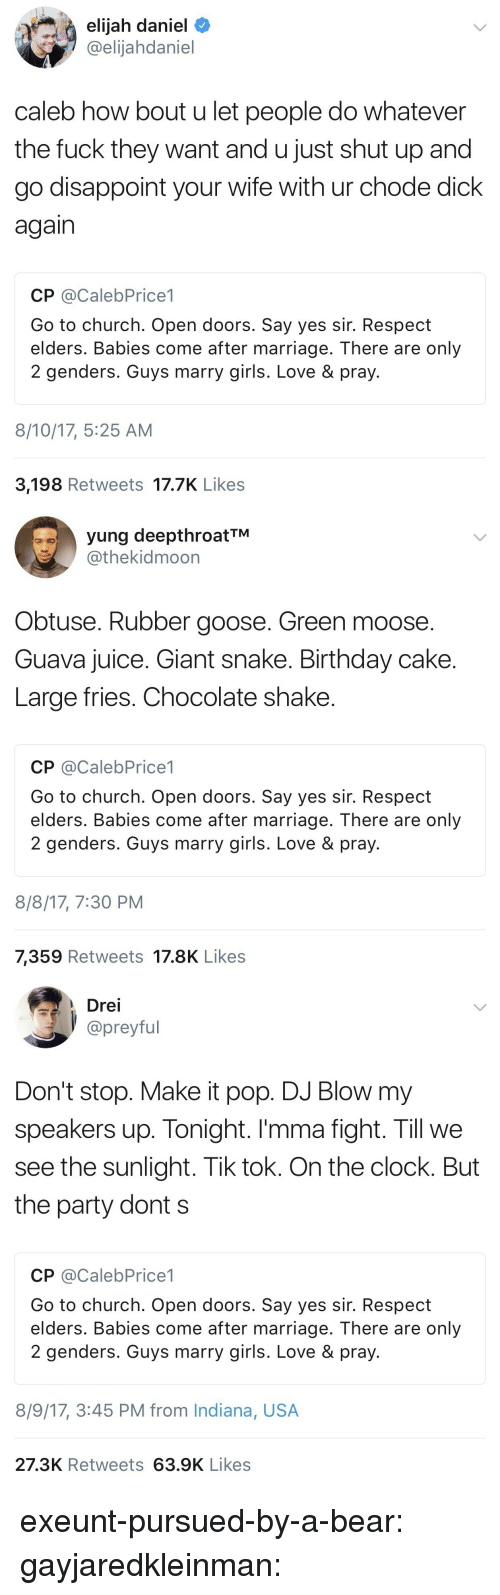 Birthday, Church, and Clock: elijah daniel  @elijahdaniel  caleb how bout u let people do whatever  the fuck they want and u just shut up and  go disappoint your wife with ur chode dick  again  CP @CalebPrice1  Go to church. Open doors. Say yes sir. Respect  elders. Babies come after marriage. There are only  2 genders. Guys marry girls. Love & pray.  8/10/17, 5:25 AM  3,198 Retweets 17.7K Like:s   yung deepthroatTM  @thekidmoon  Obtuse. Rubber goose. Green moose.  Guava juice. Giant snake. Birthday cake  Large fries. Chocolate shake  CP @CalebPrice1  Go to church. Open doors. Say yes sir. Respect  elders. Babies come after marriage. There are only  2 genders. Guys marry girls. Love & pray  8/8/17, 7:30 PM  7,359 Retweets 17.8K Likes   Drei  preyful  Don't stop. Make it pop. DJ Blow my  speakers up. Tonight. I'mma fight. Till we  see the sunlight. Tik tok. On the clock. But  the party dont s  CP @CalebPrice1  Go to church. Open doors. Say yes sir. Respect  elders. Babies come after marriage. There are only  2 genders. Guys marry girls. Love& pray  8/9/17, 3:45 PM from Indiana, USA  27.3K Retweets 63.9K Likes exeunt-pursued-by-a-bear: gayjaredkleinman: